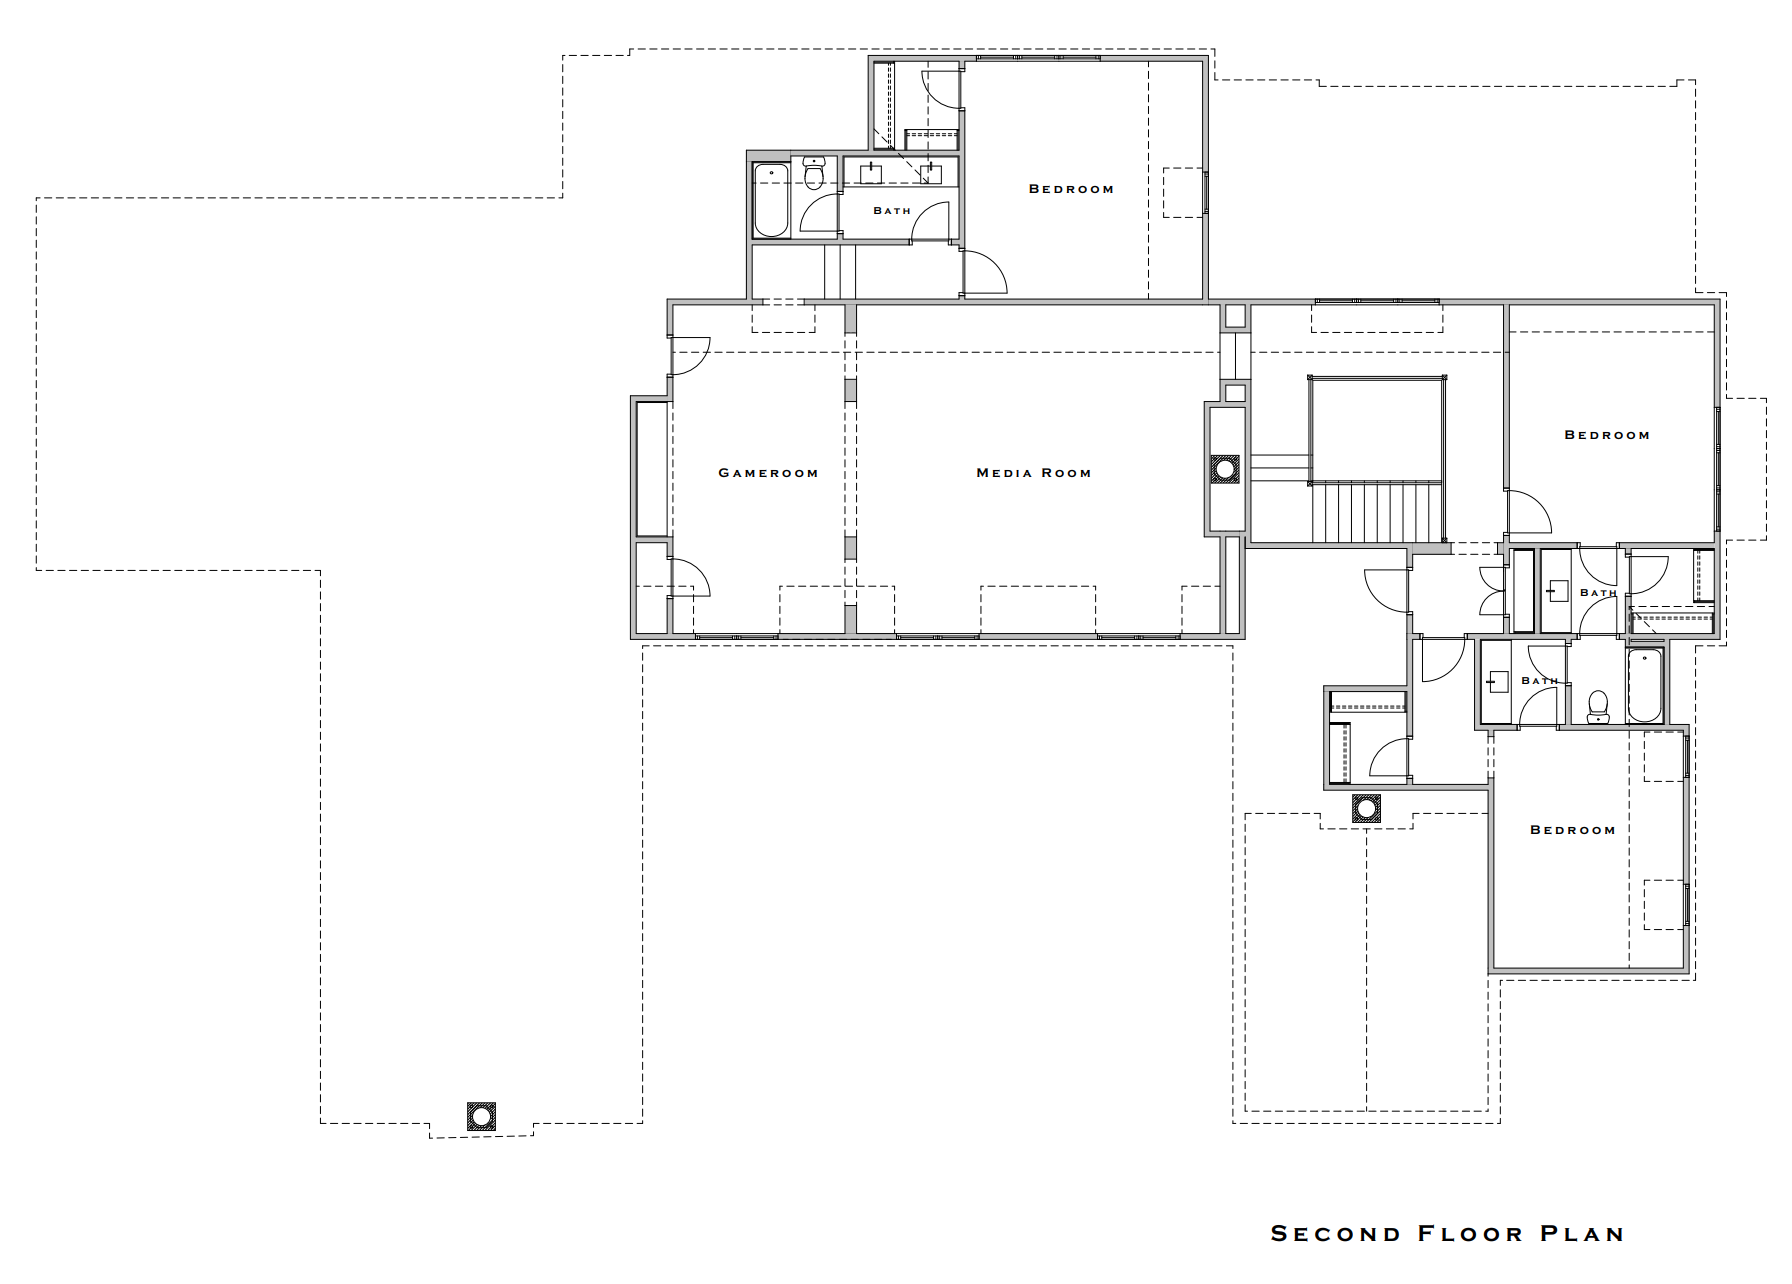 The Longtown Company Vesta Show House: 2nd Floor Plan